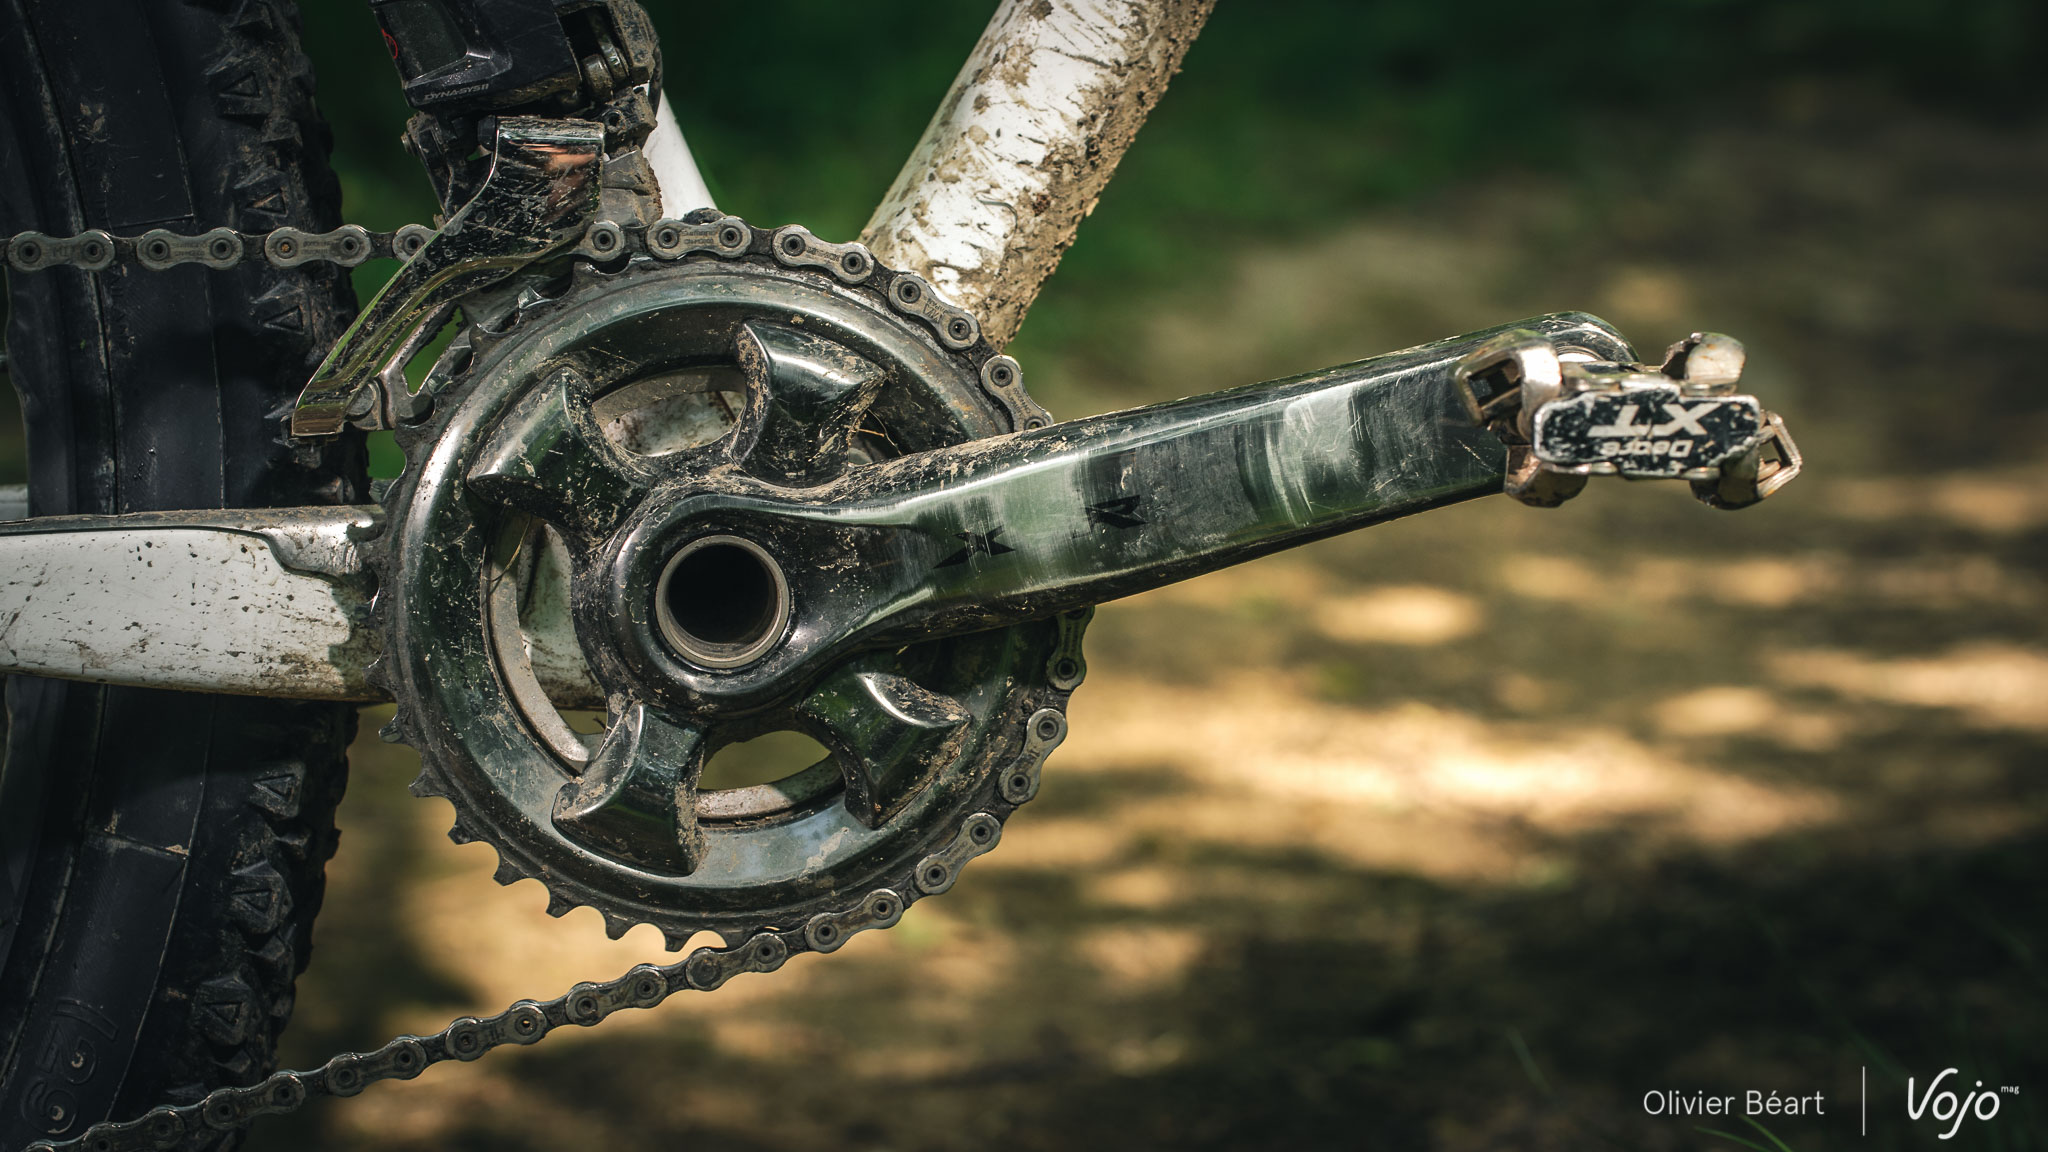 Shimano_XTR_Di2_Test_longue_duree_Copyright_Beart_VojoMag-10